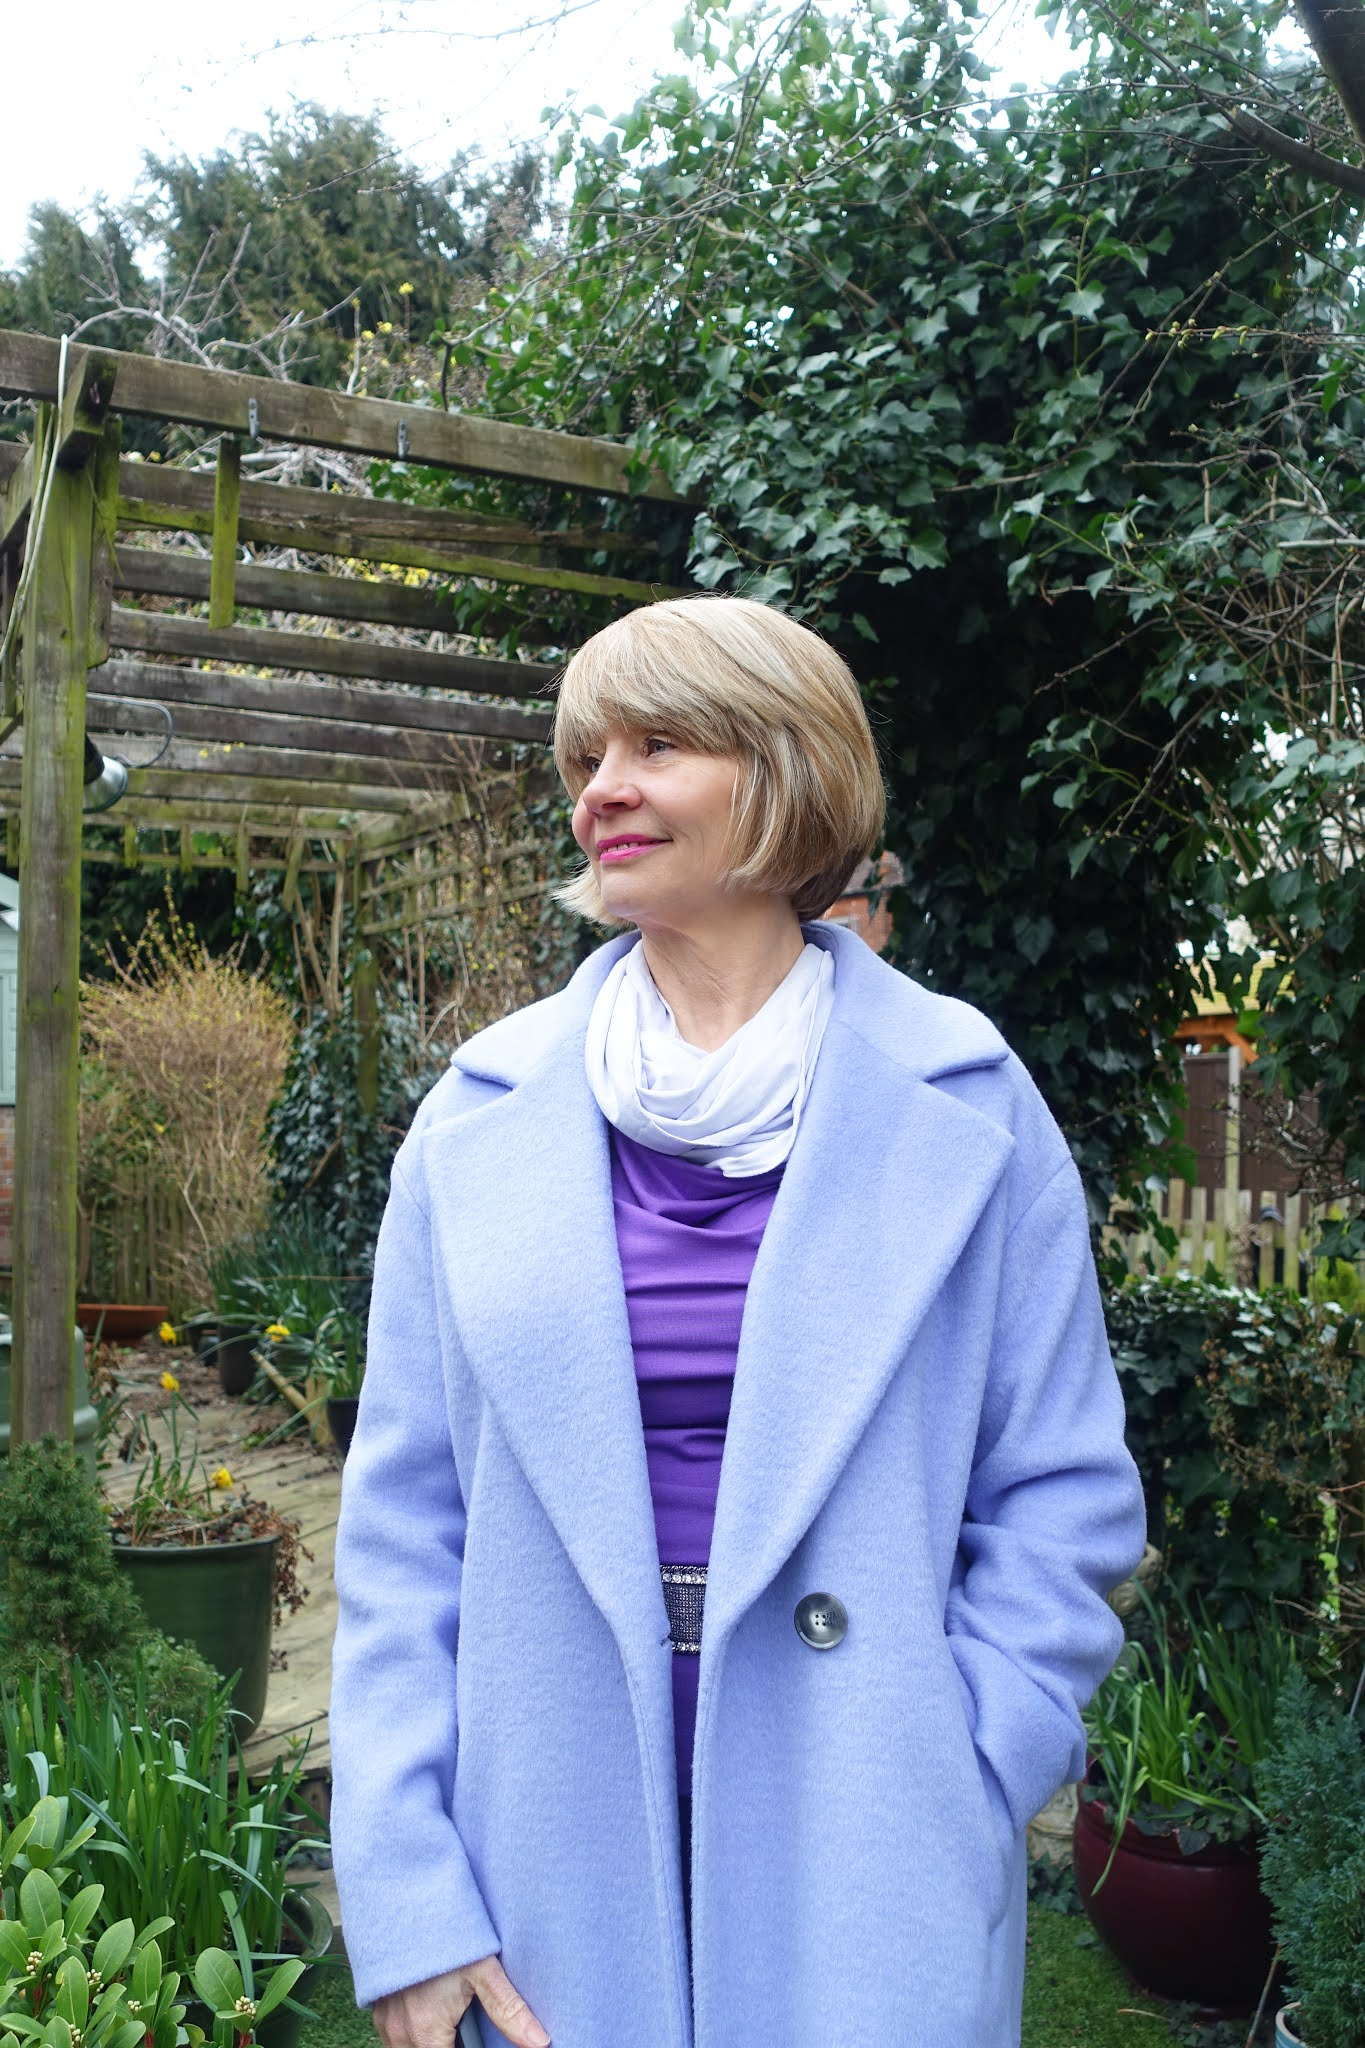 A lavender cashmere coat and shades of purple with silver worn by over 60s style blogger Gail Hanlon from Is This Mutton